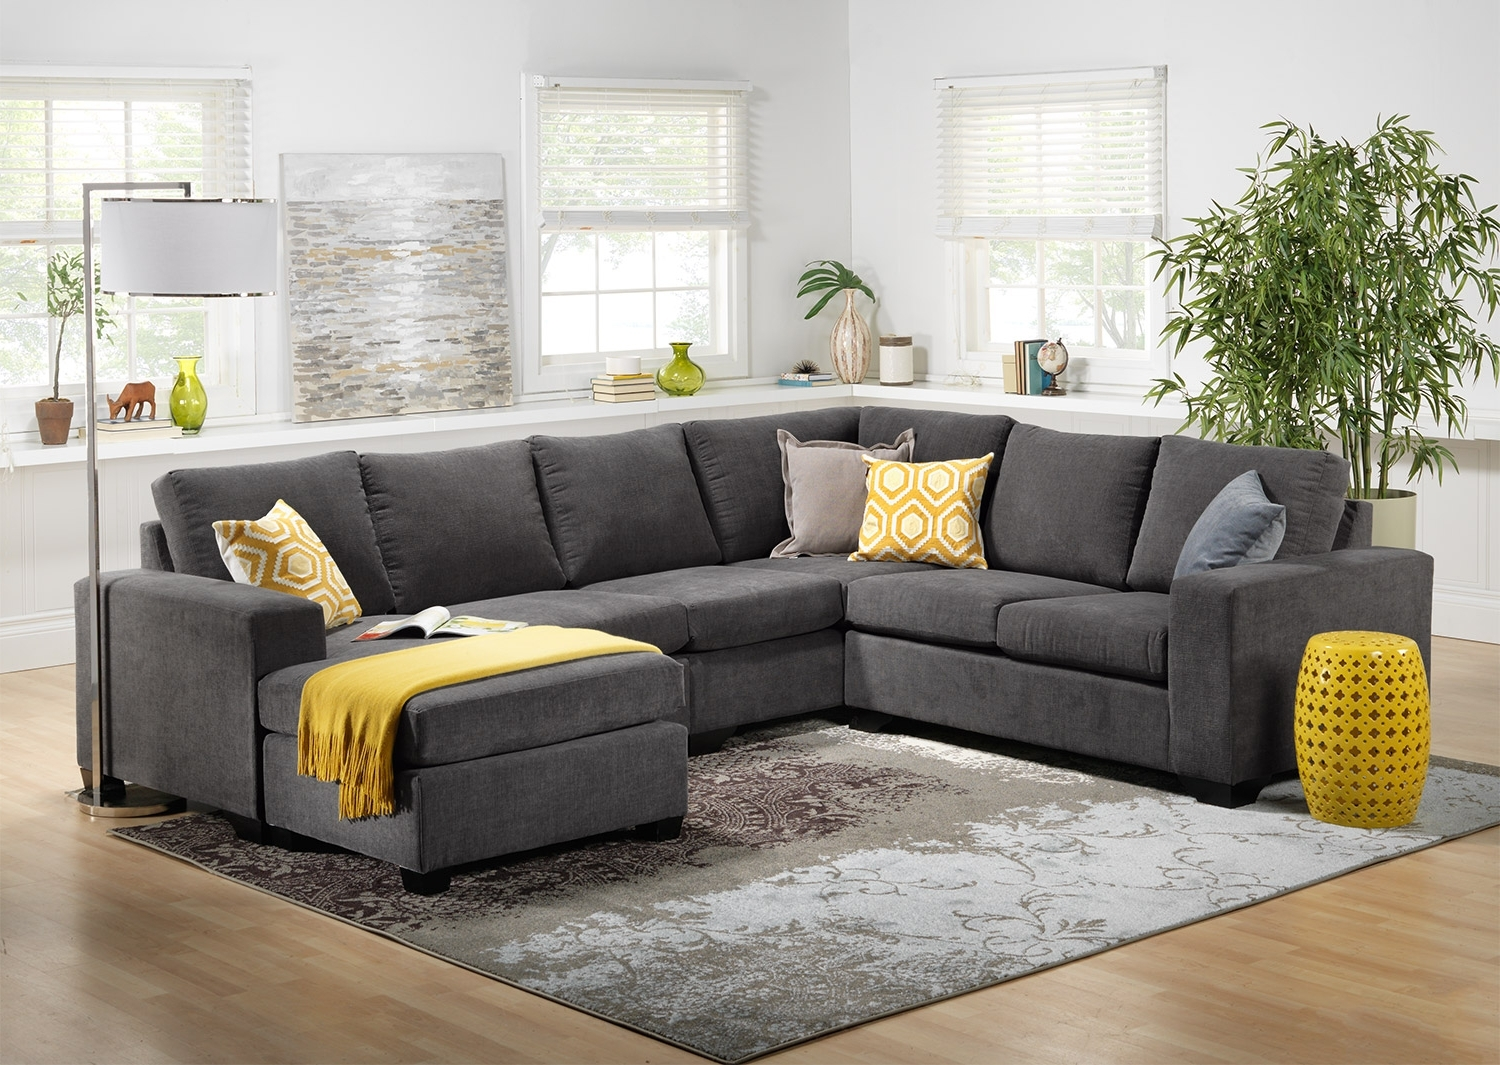 Popular Used Sectional Sofas For Sale Edmonton Best Home Furniture Ideas Inside Sectional Sofas At Edmonton (View 13 of 20)